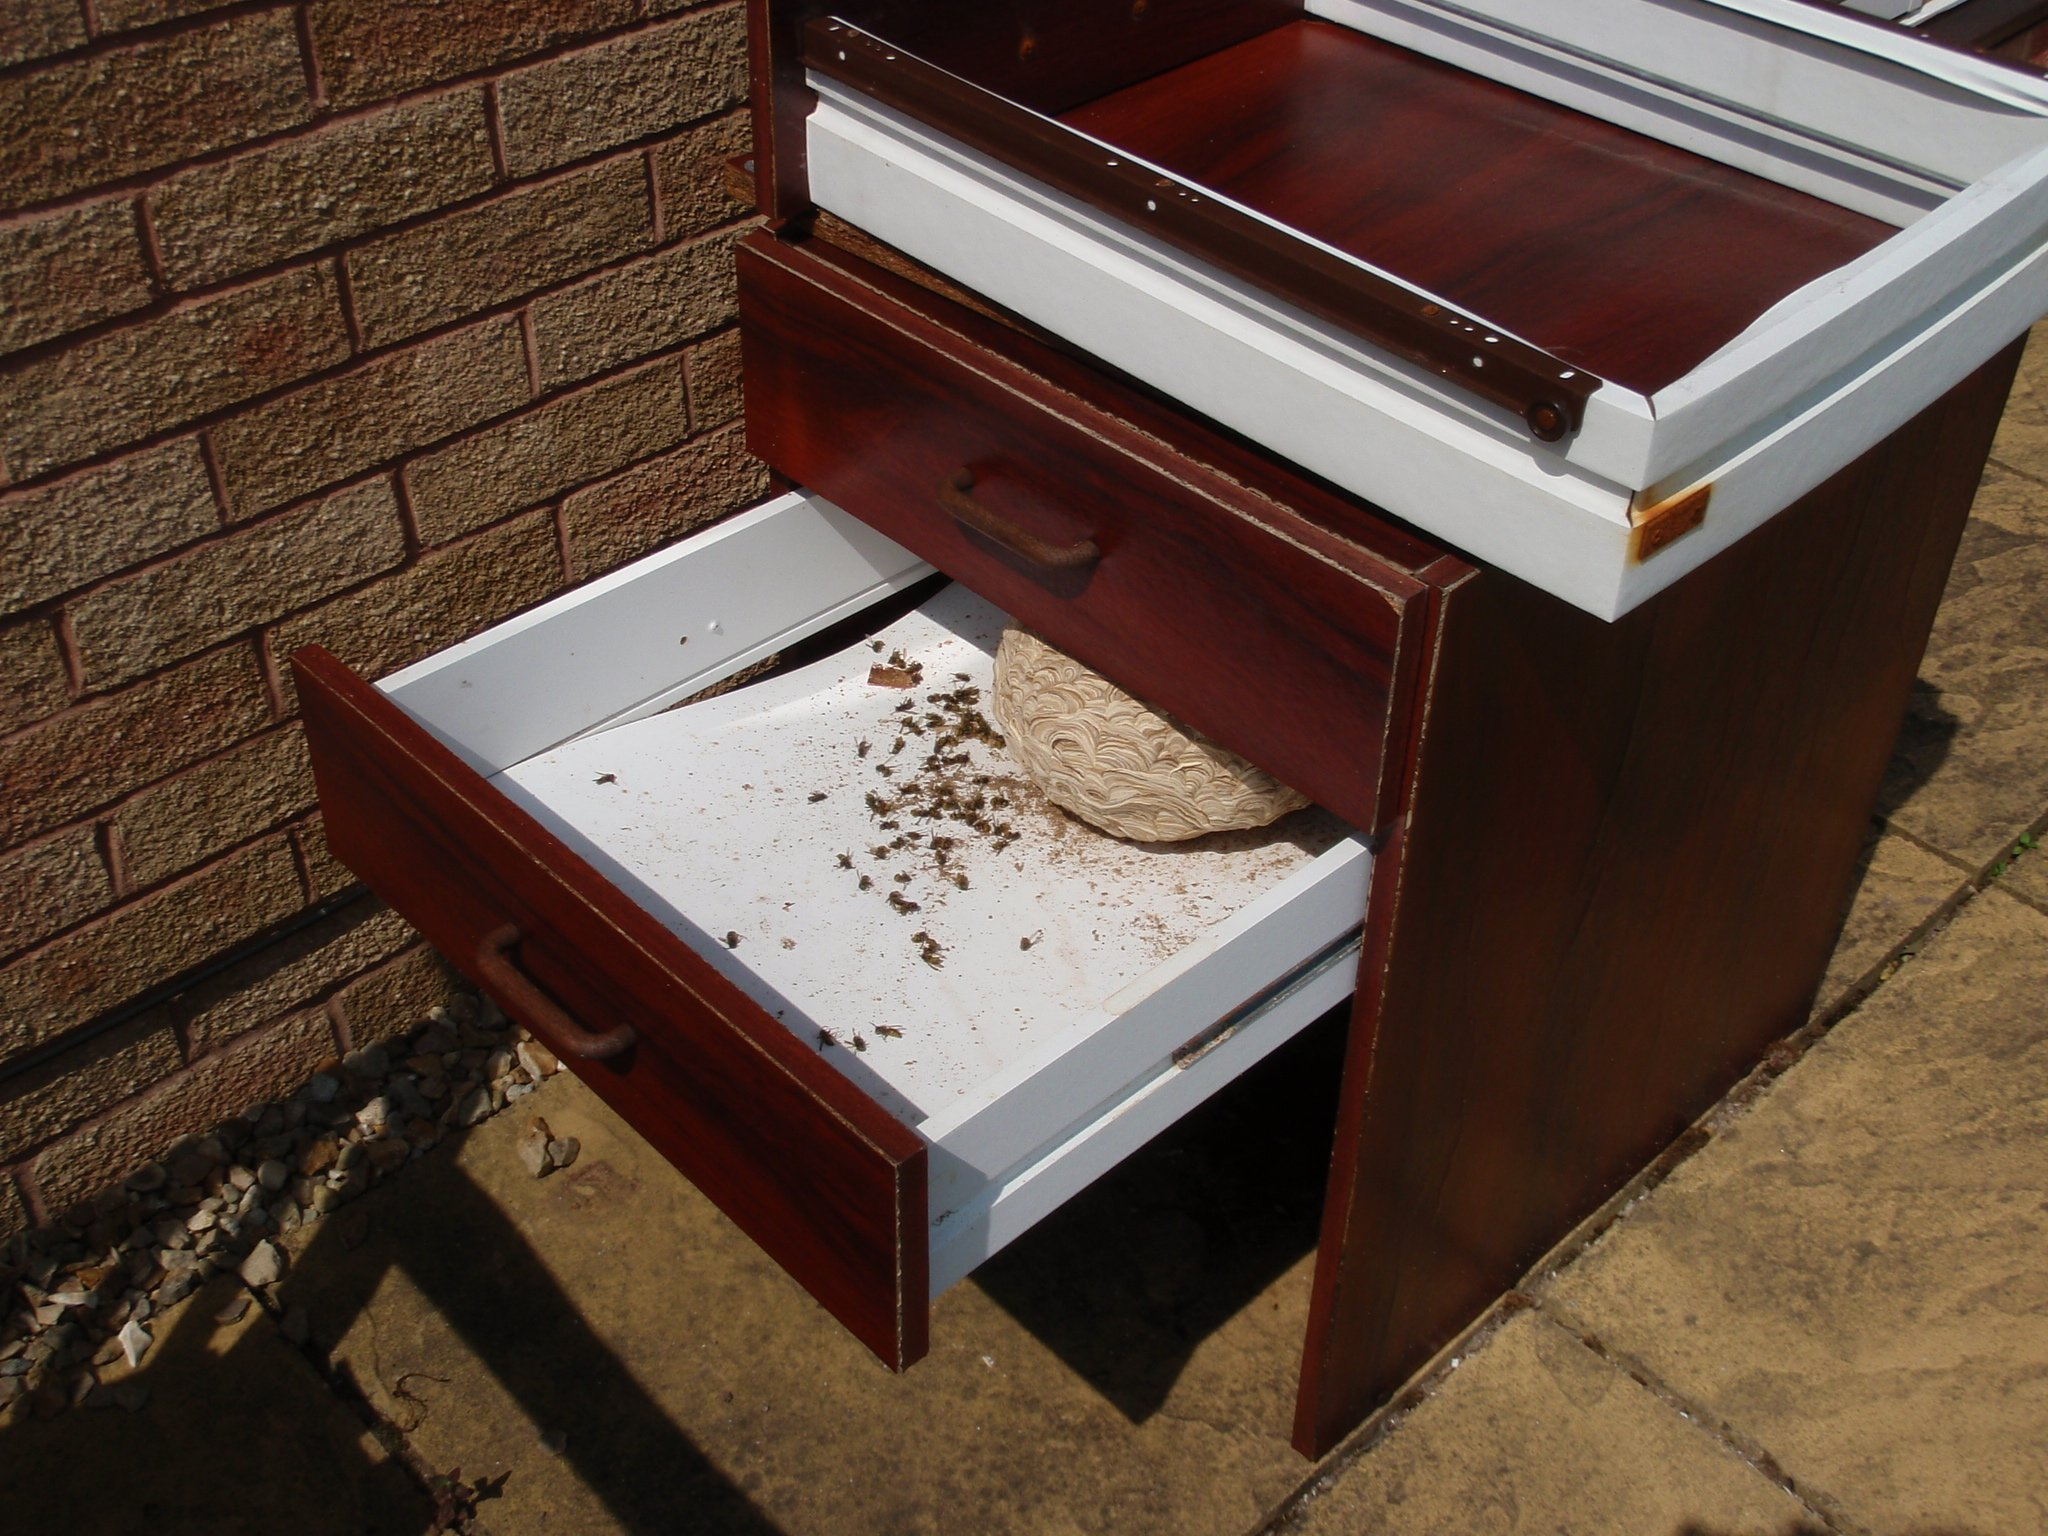 insects in wooden box